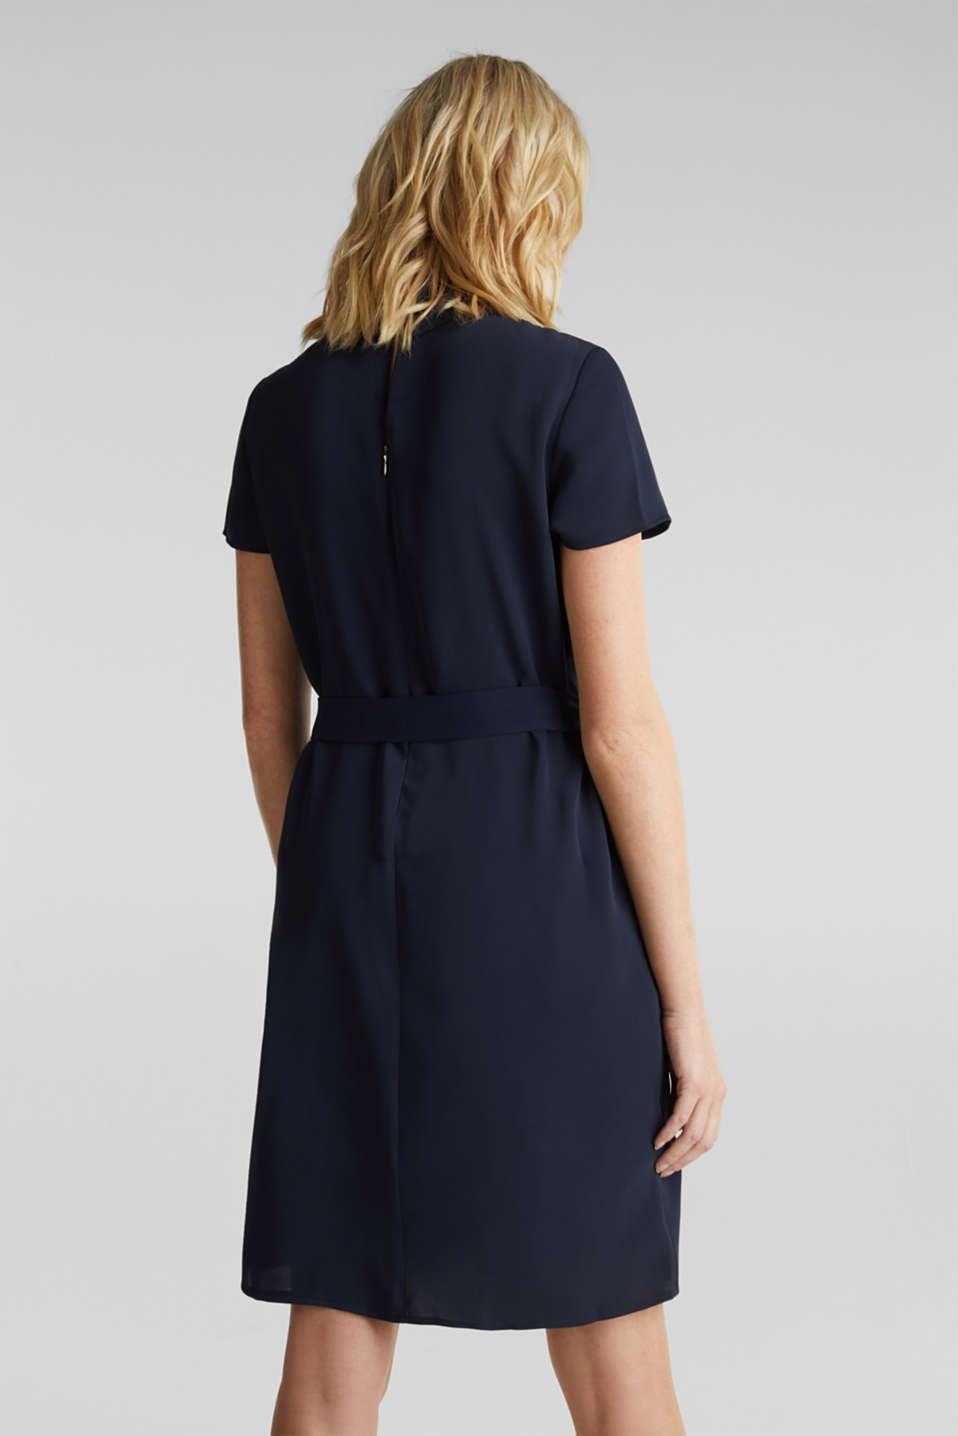 Cloth polo neck dress, NAVY, detail image number 1